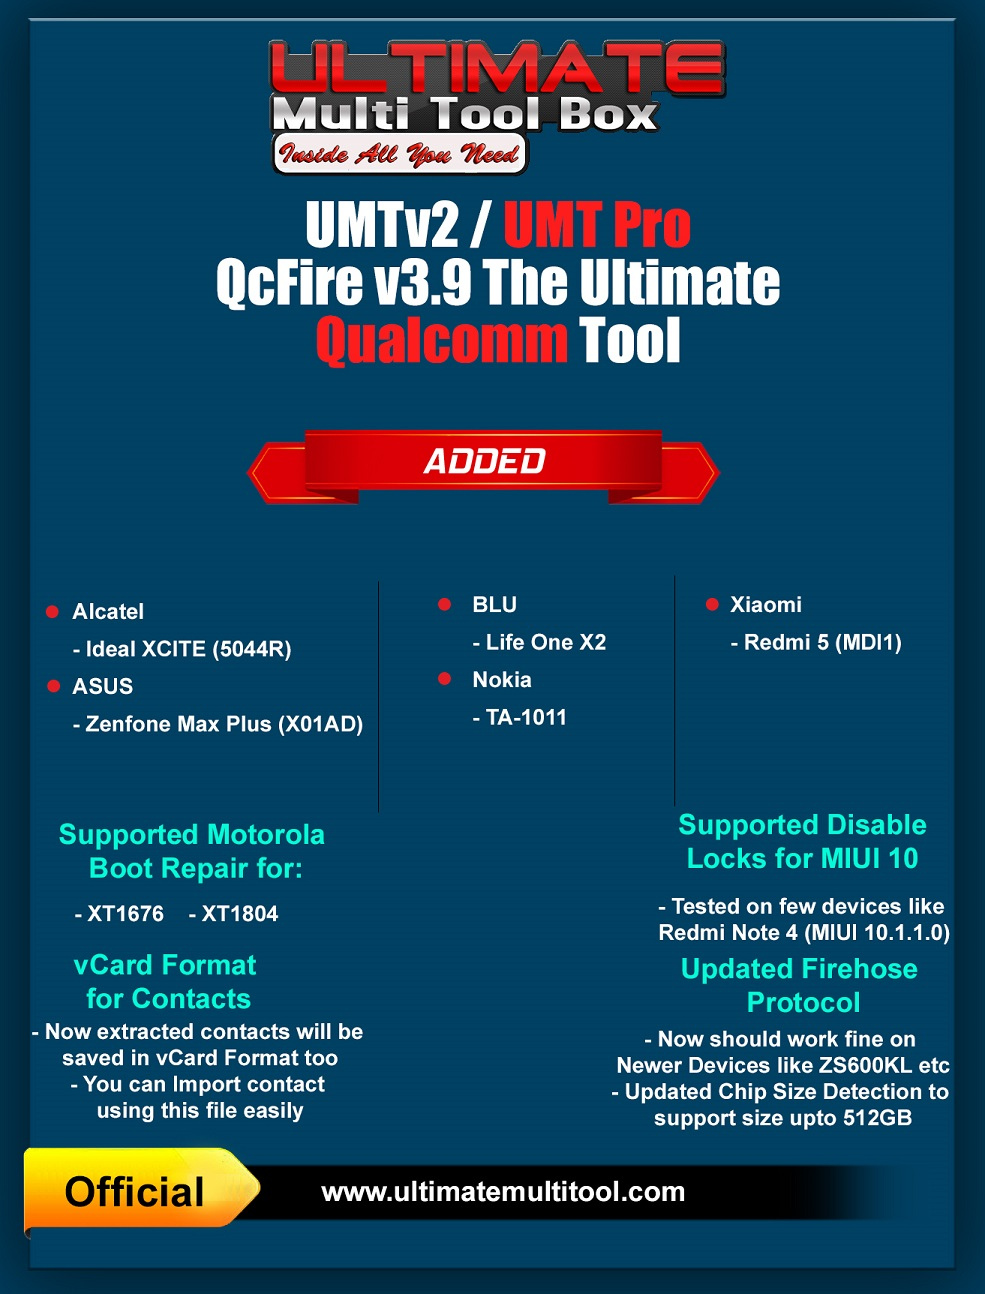 [04-03-19] UMTv2 / UMTPro - QcFire v3.9 - ASUS, Moto Boot Repair and more...